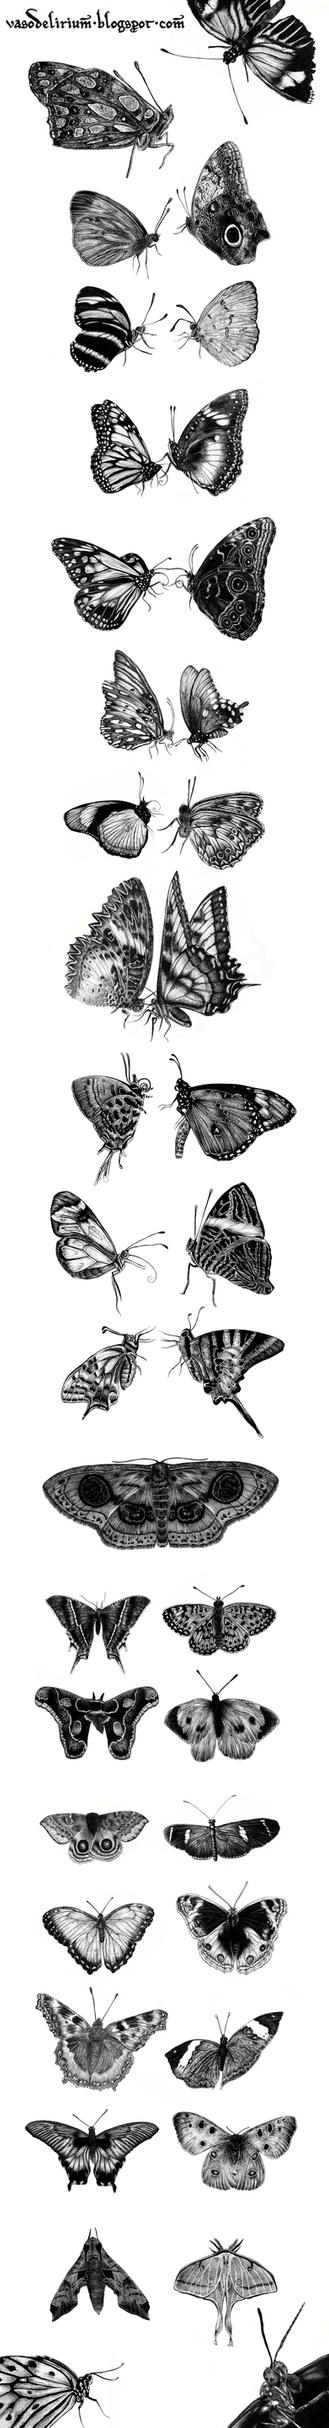 butterfly project by vasodelirium